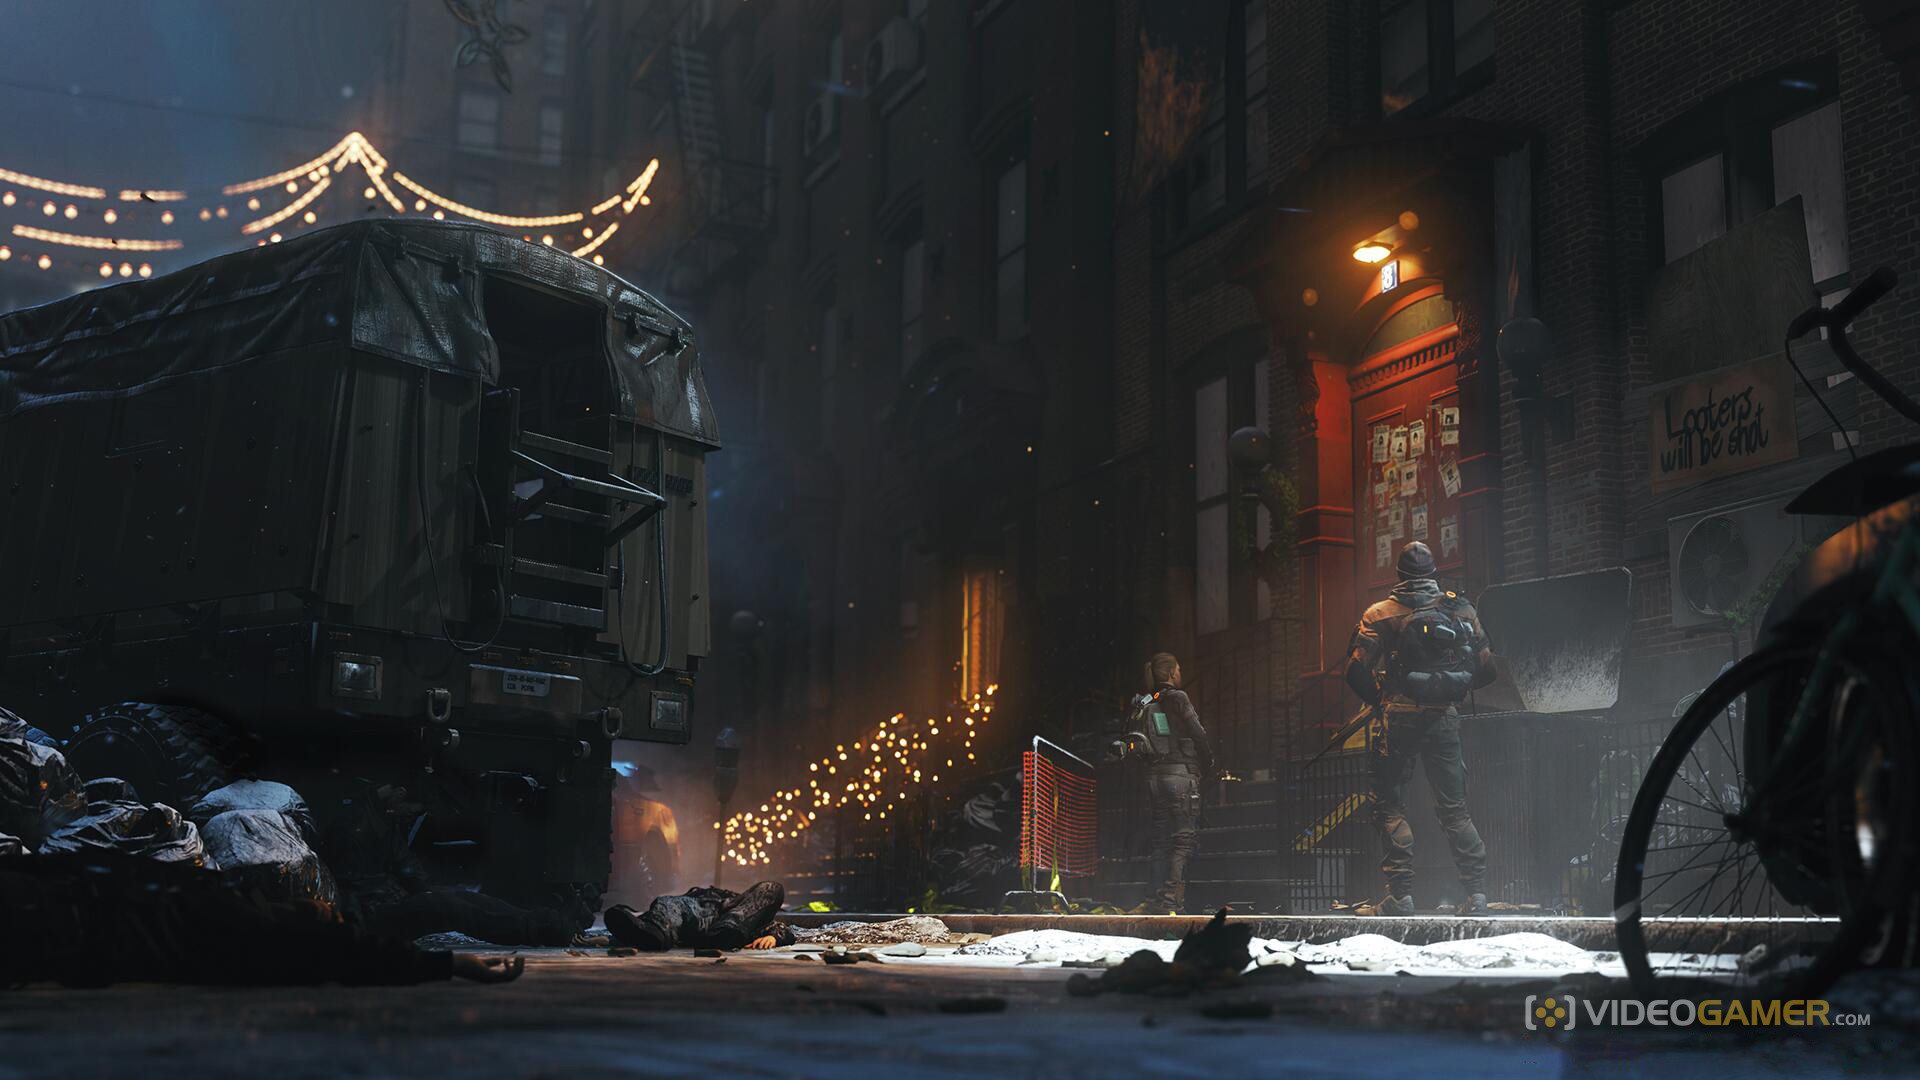 Tom Clancys The Division Video Game 36 High Resolution Wallpaper 1920x1080